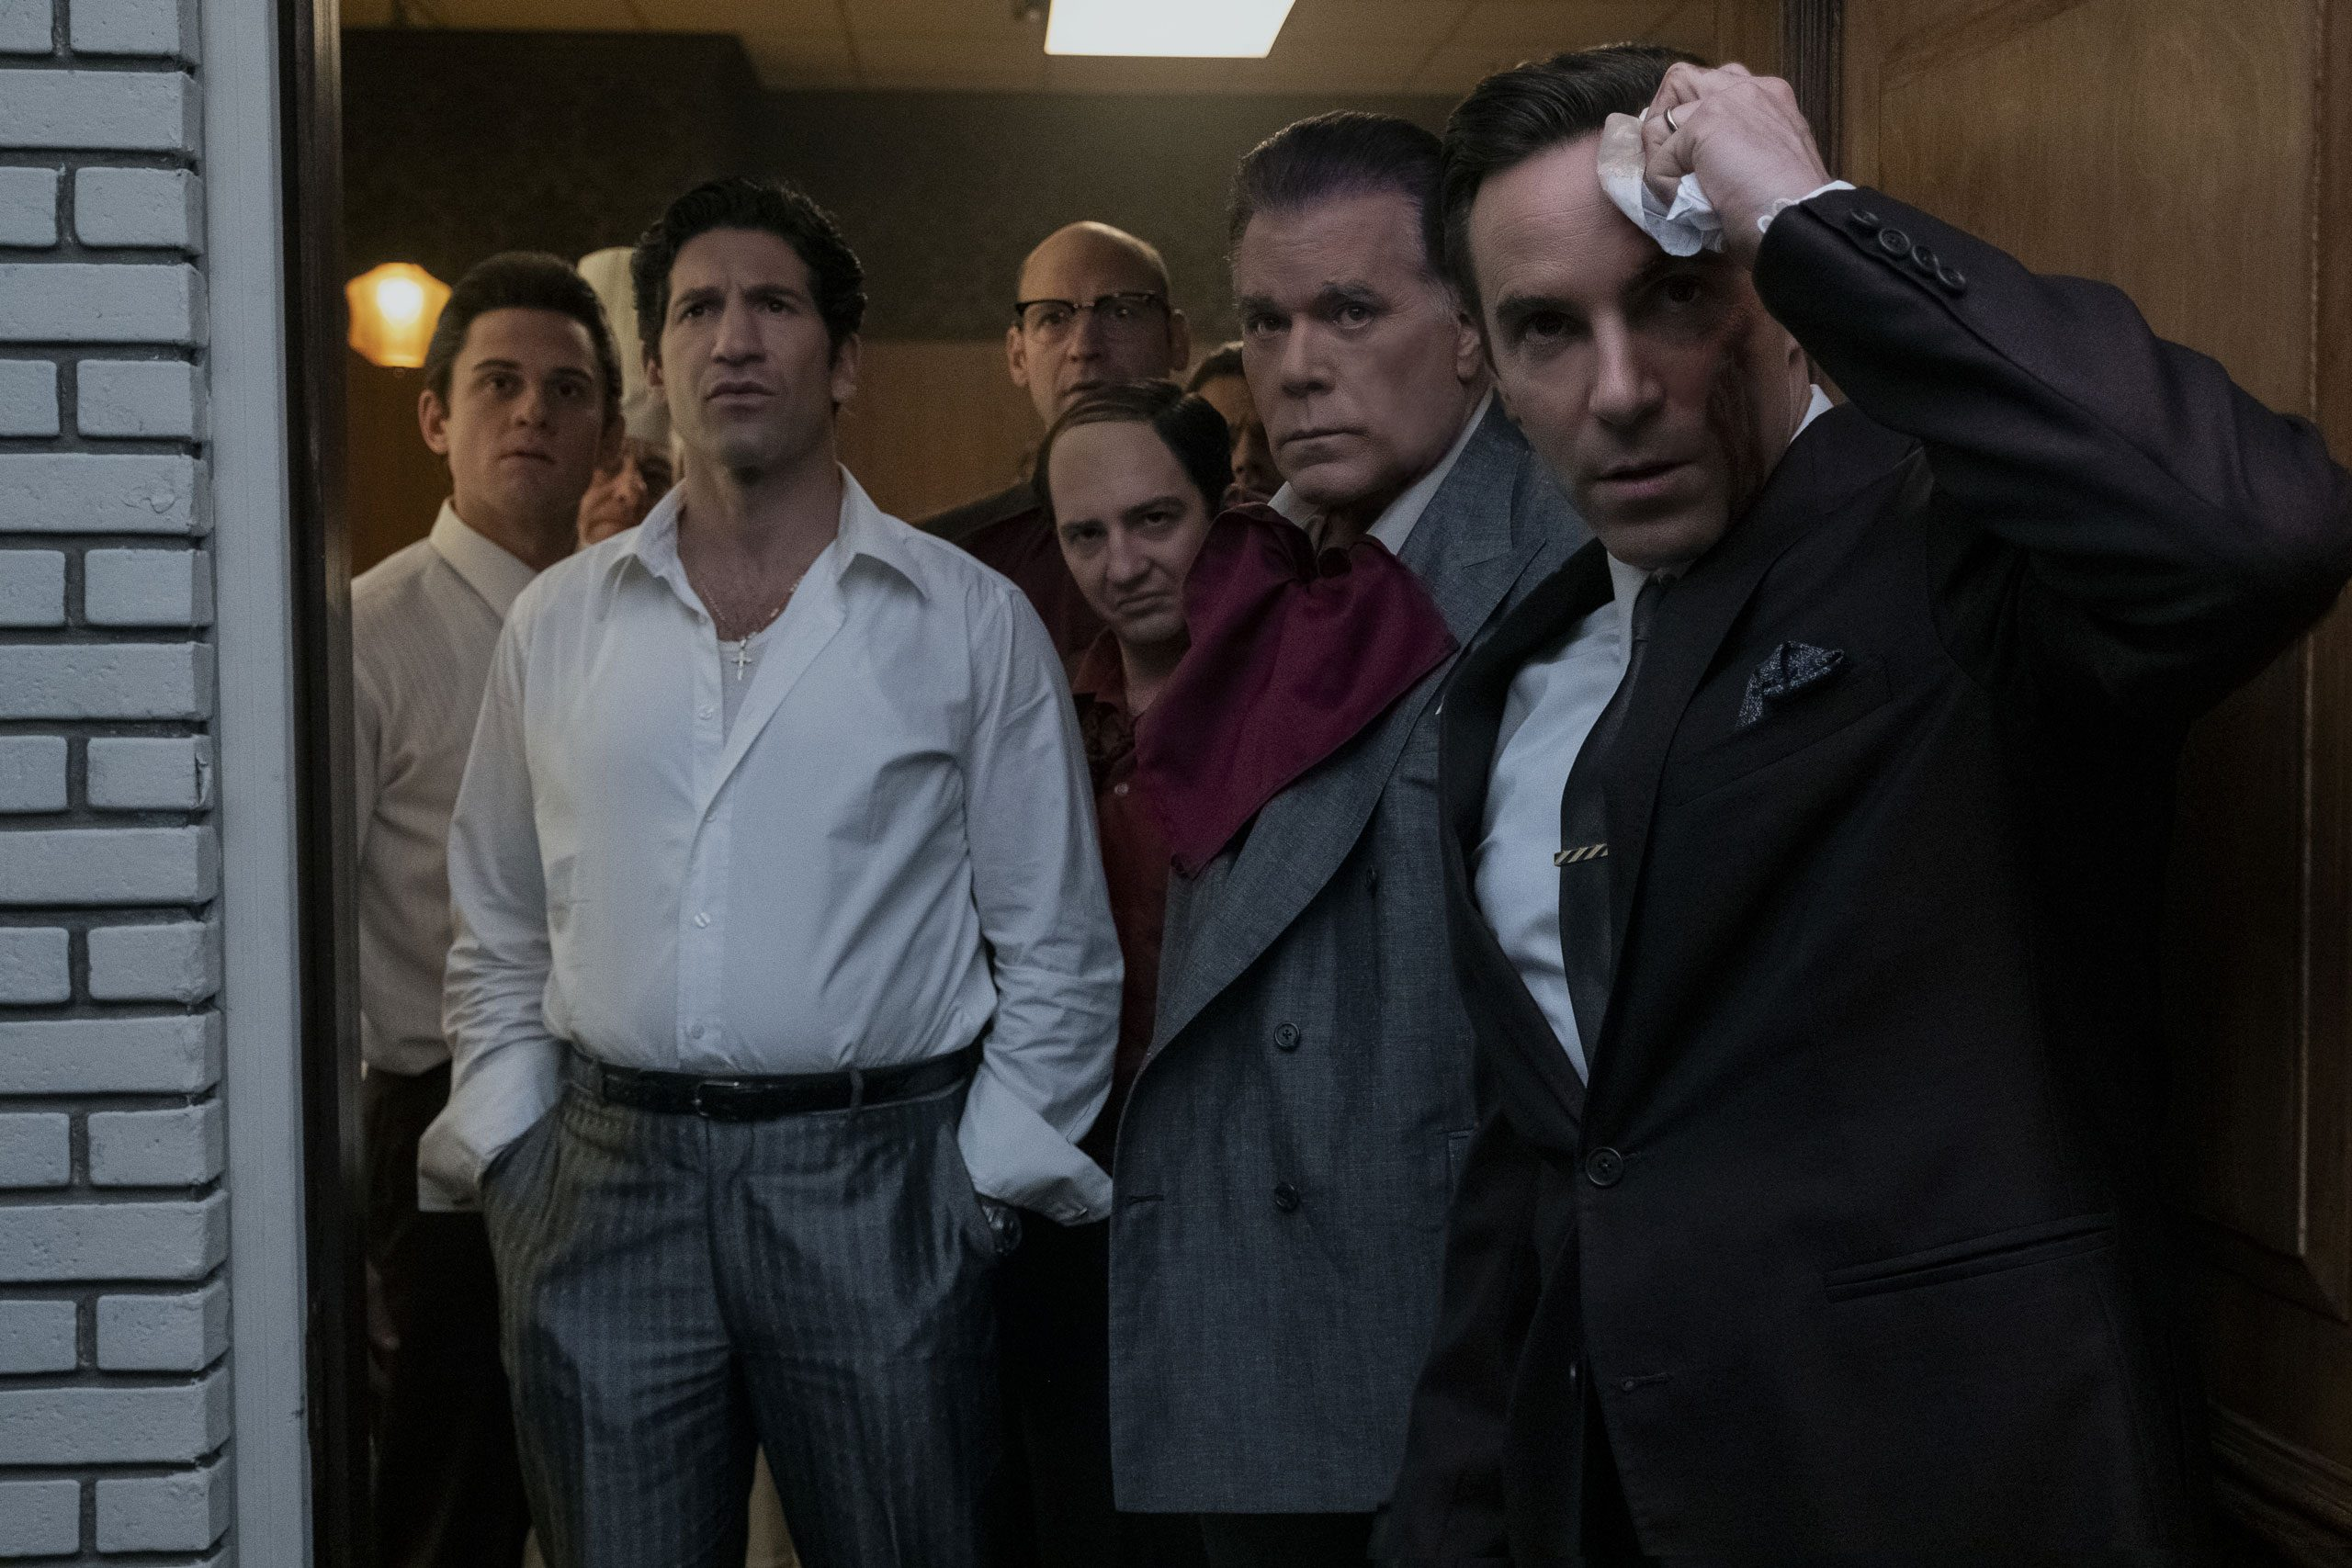 Review: 'The Many Saints of Newark' - 'The Sopranos' Prequel Which Entertains But Remains Mediocre